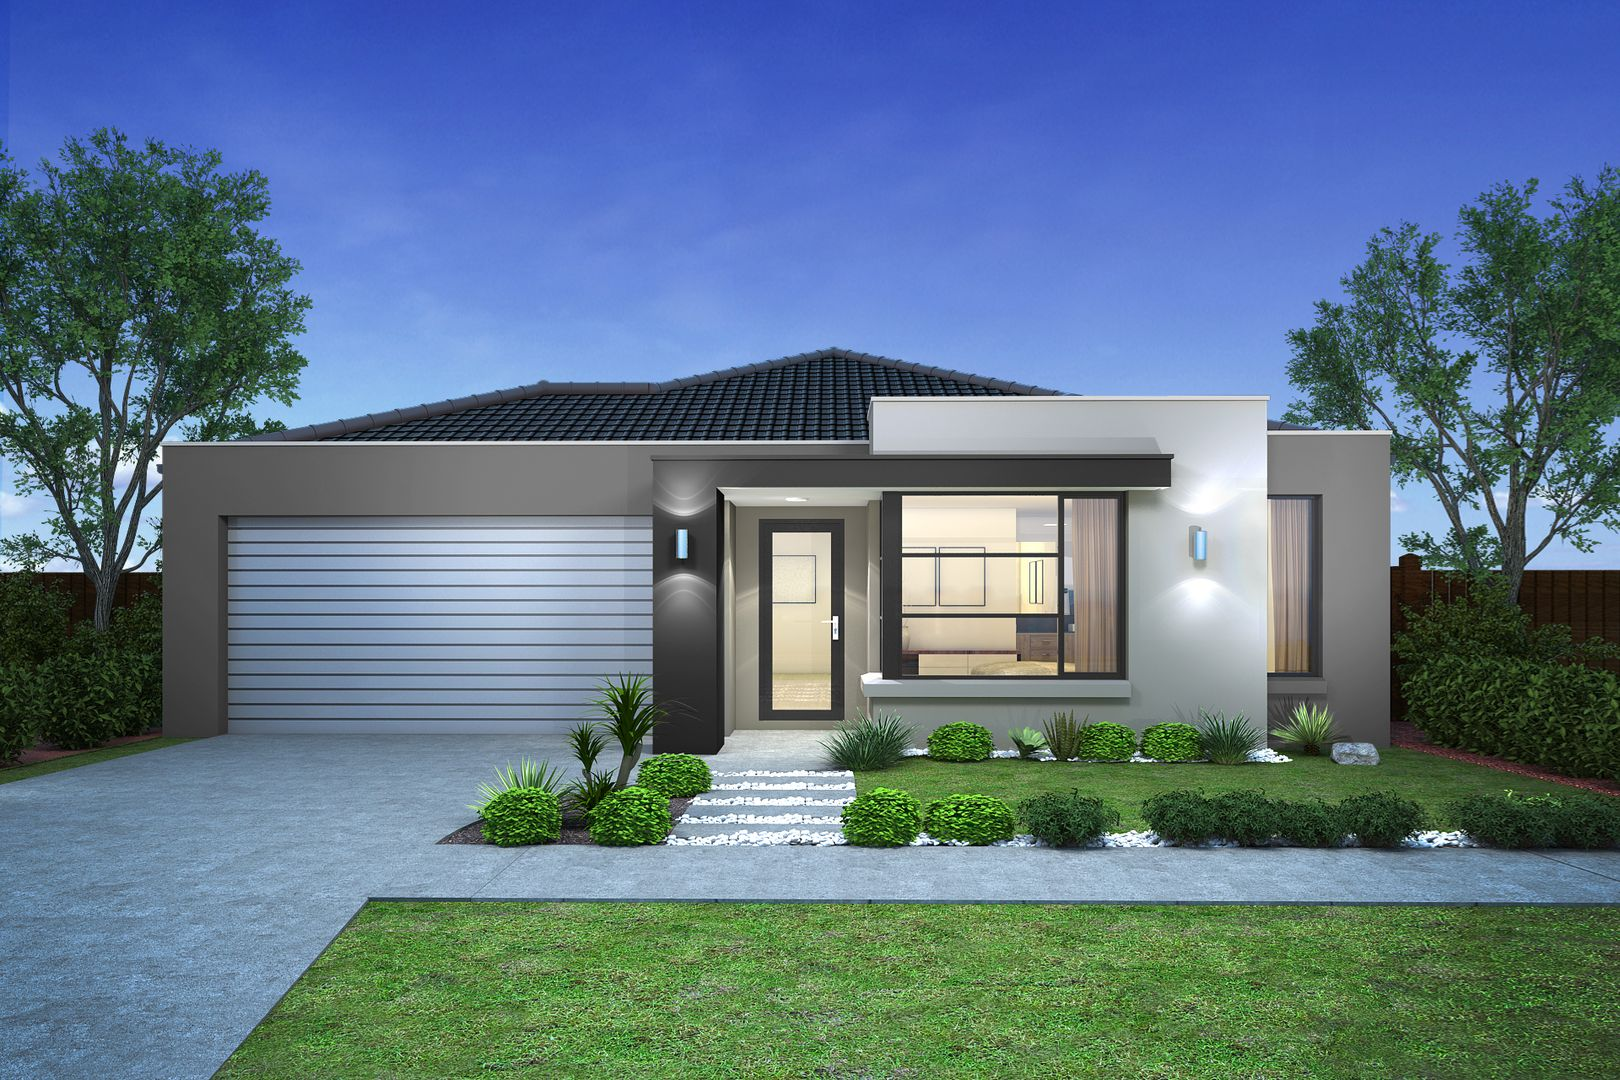 LOT 118 PLATFORM ESTATE, Donnybrook VIC 3064, Image 0